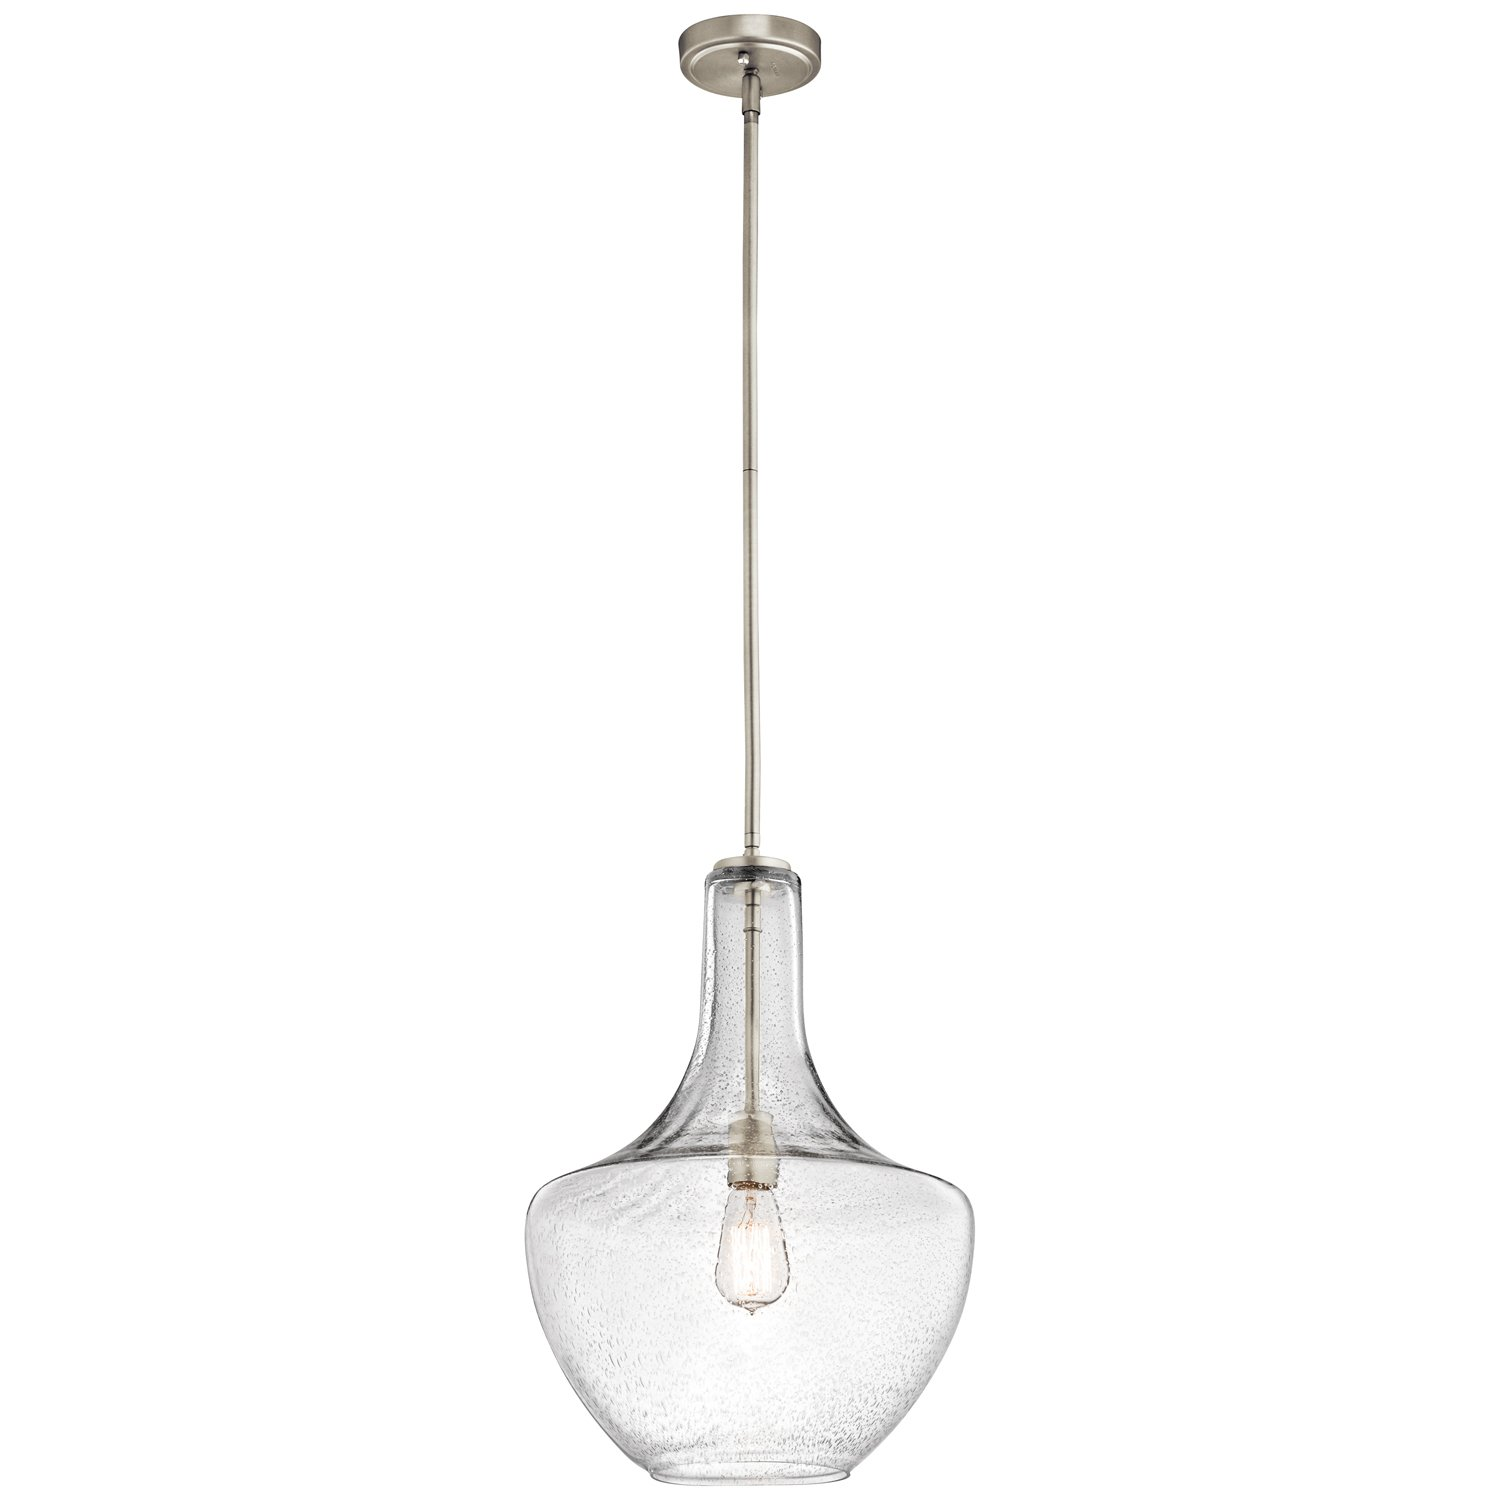 Kichler 42046NICS Everly 1-Light 13.75'' Pendant in Brushed Nickel by Kichler Lighting